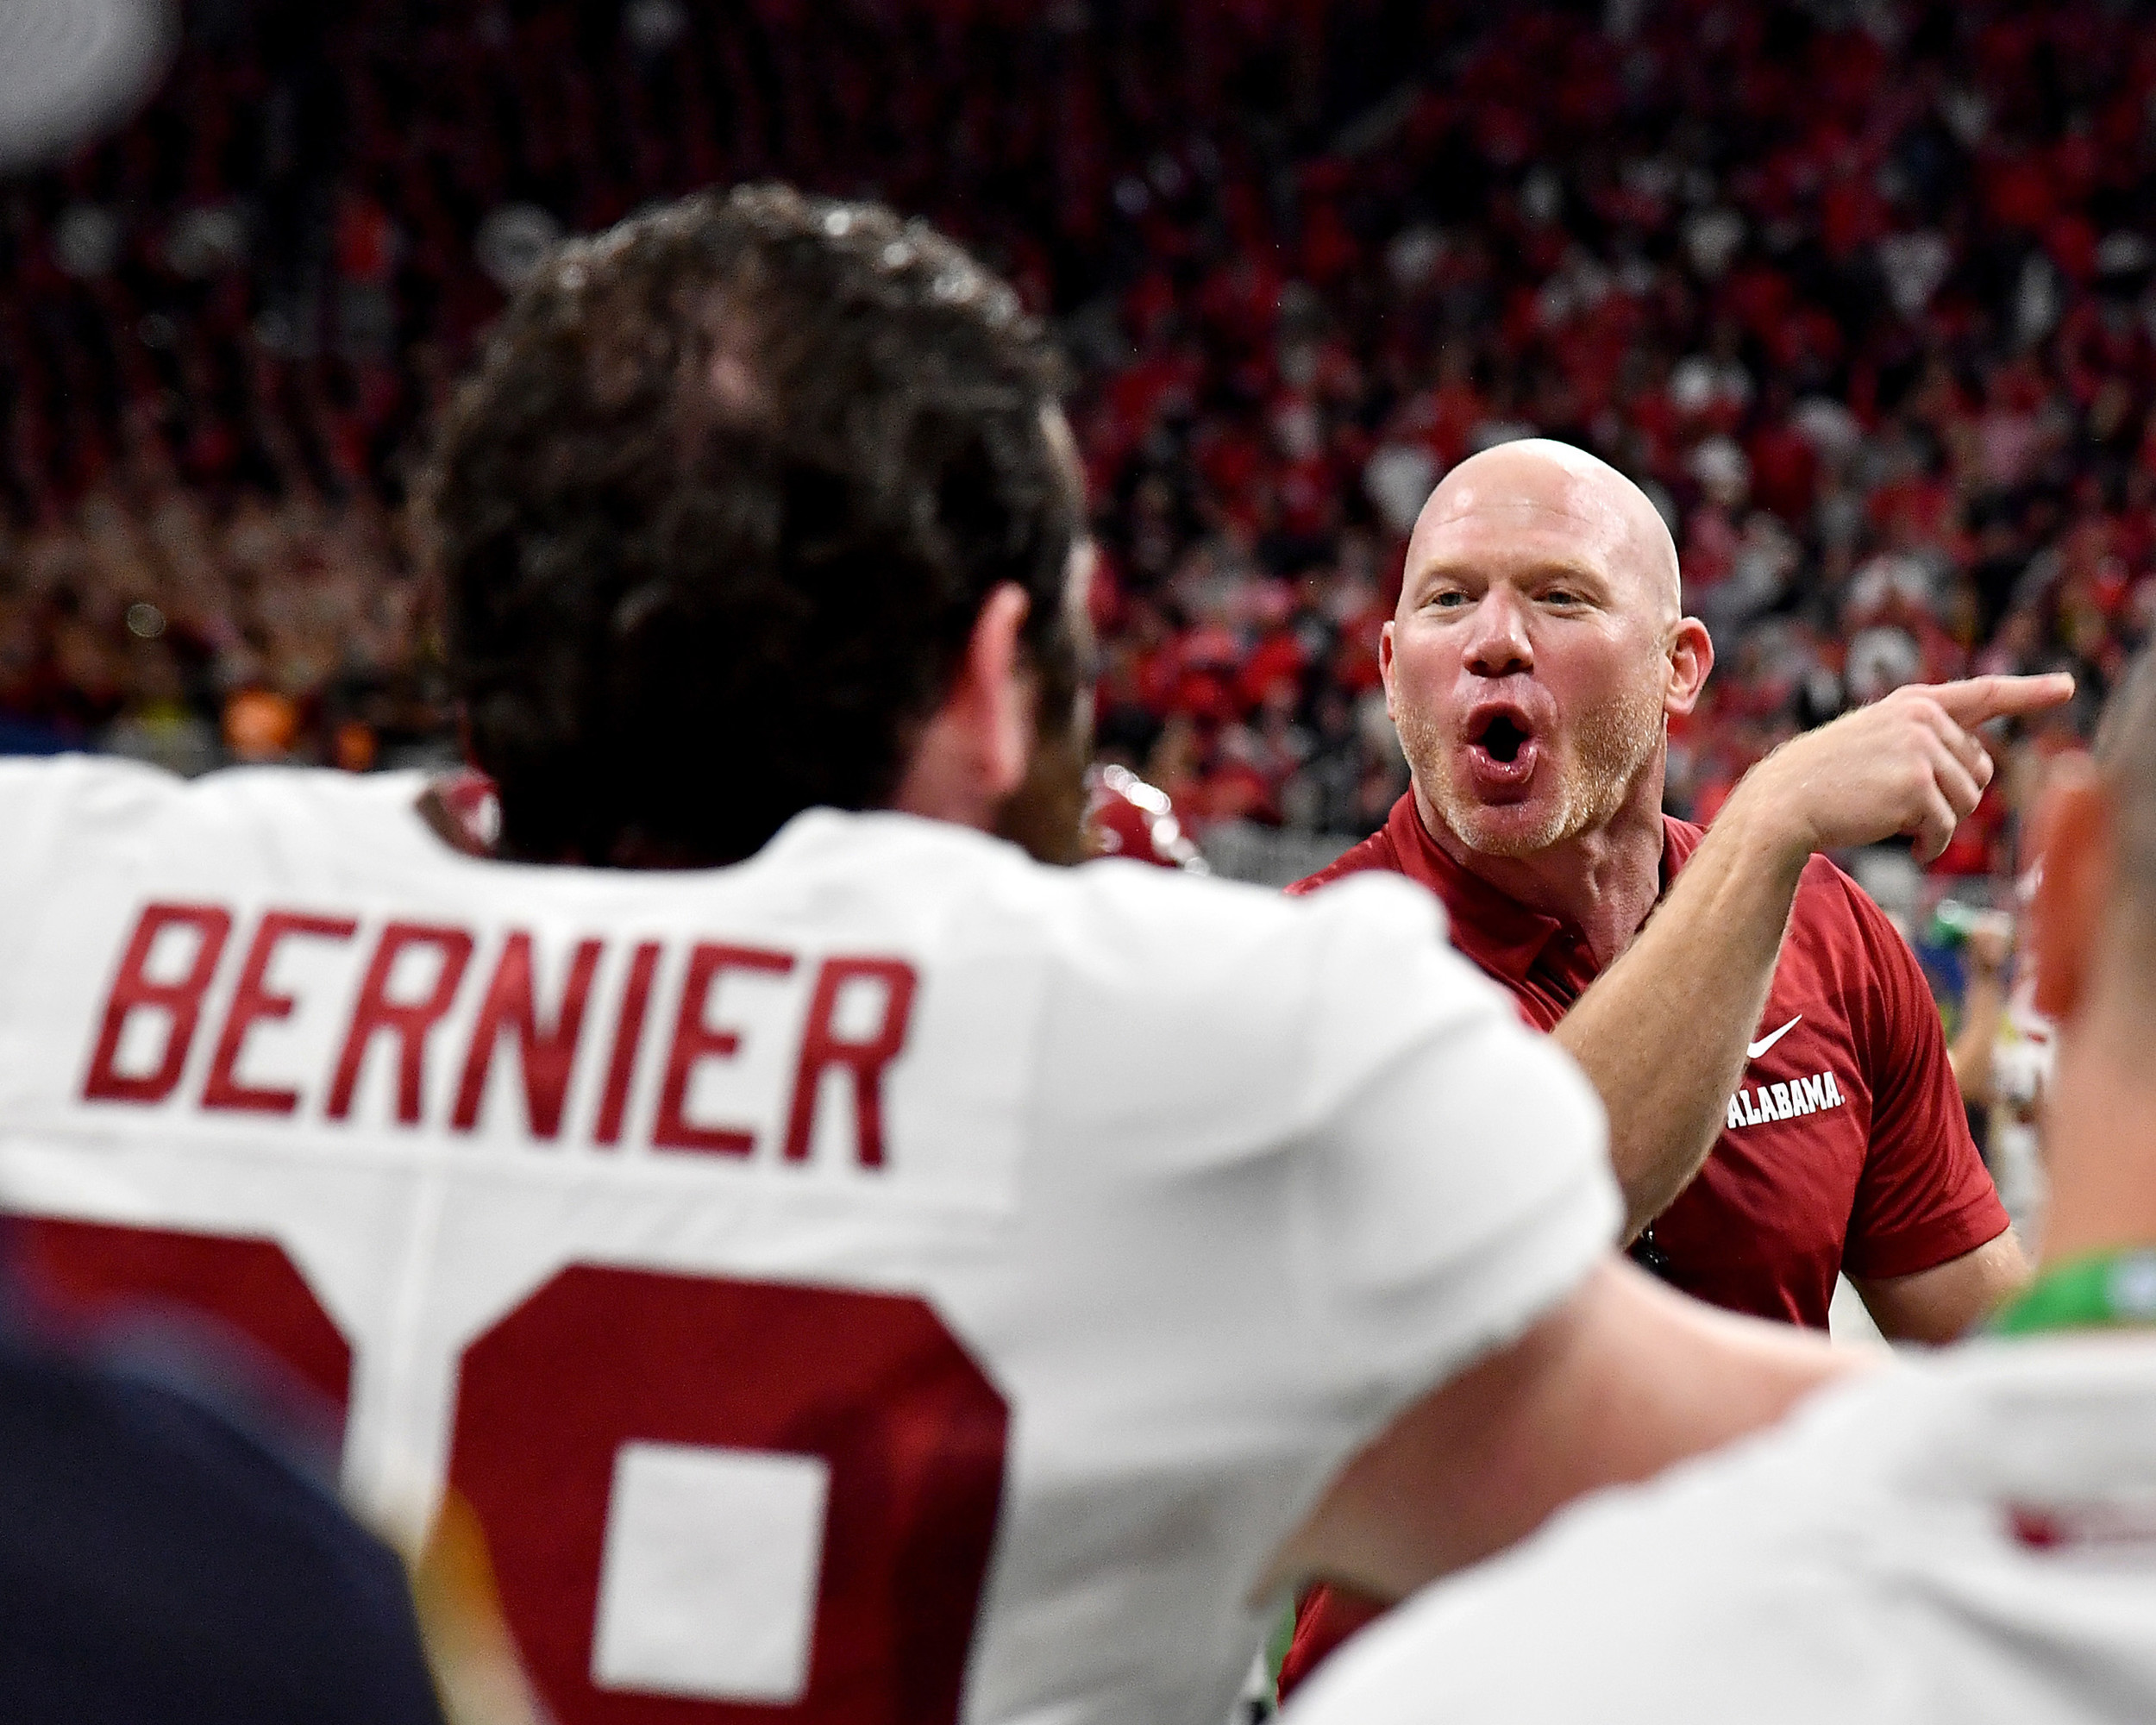 Alabama strength coach Scott Cochran fires up his players late in the fourth quarter of the 2018 SEC Championship football game against the Georgia Bulldogs at Mercedes-Benz Stadium in Atlanta, Ga., on Dec. 1, 2018. Alabama wins 35-28. (Photo by Lee Walls)